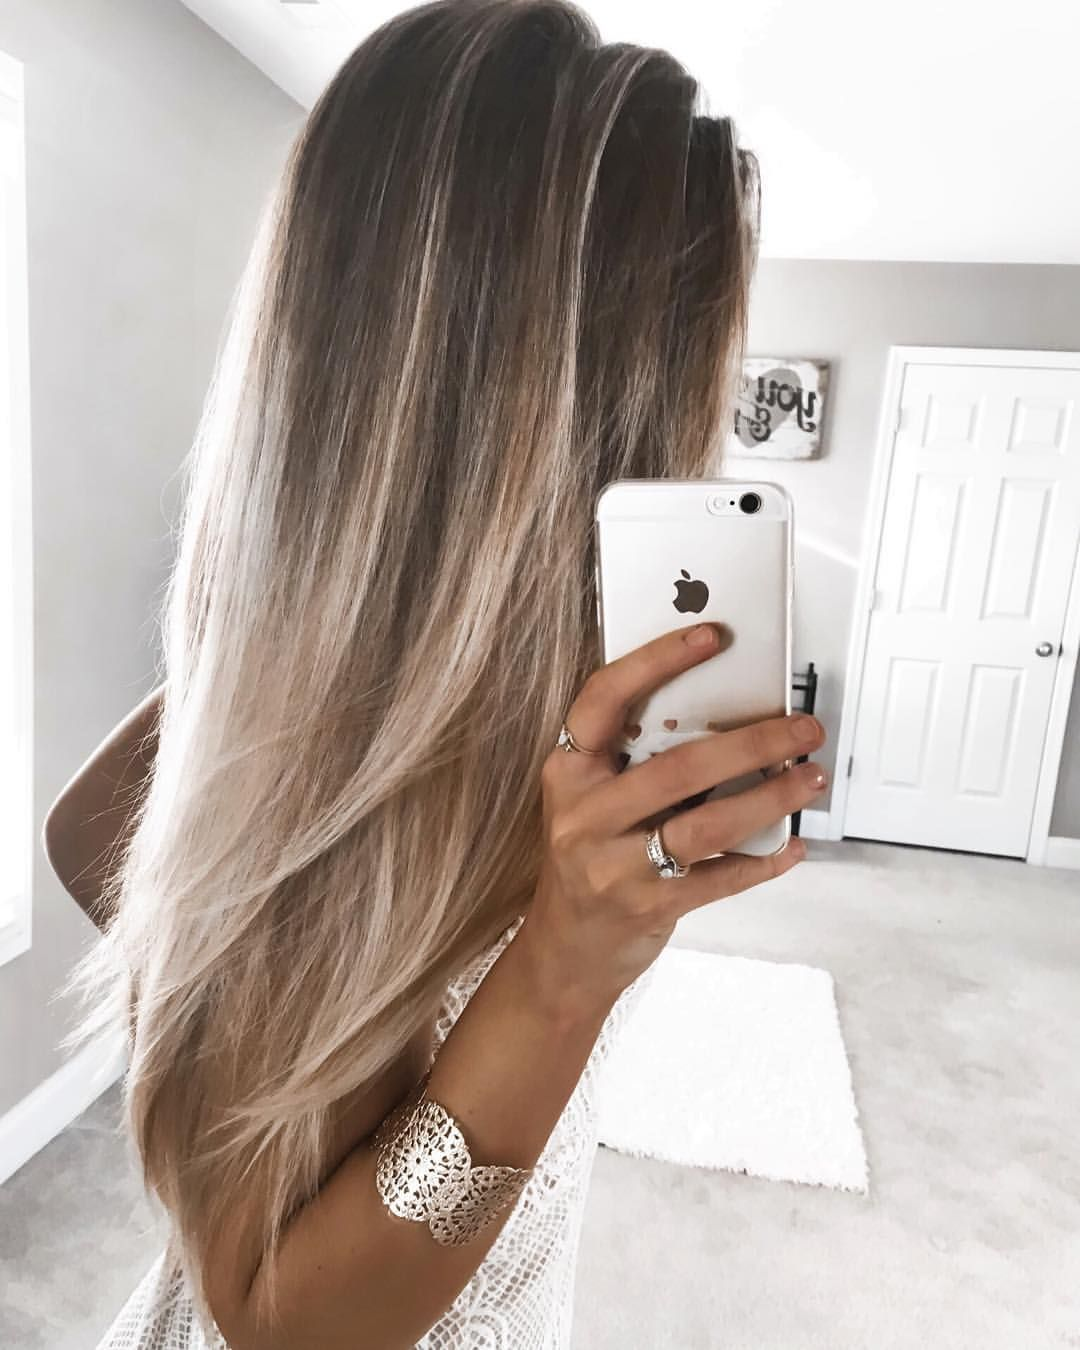 Kelsey Floyd On Instagram I Ve Had A Lot Of People Ask Me For A Good Shot Of My Hair To Check Out The Colors S Long Hair Styles Hair Styles Summer